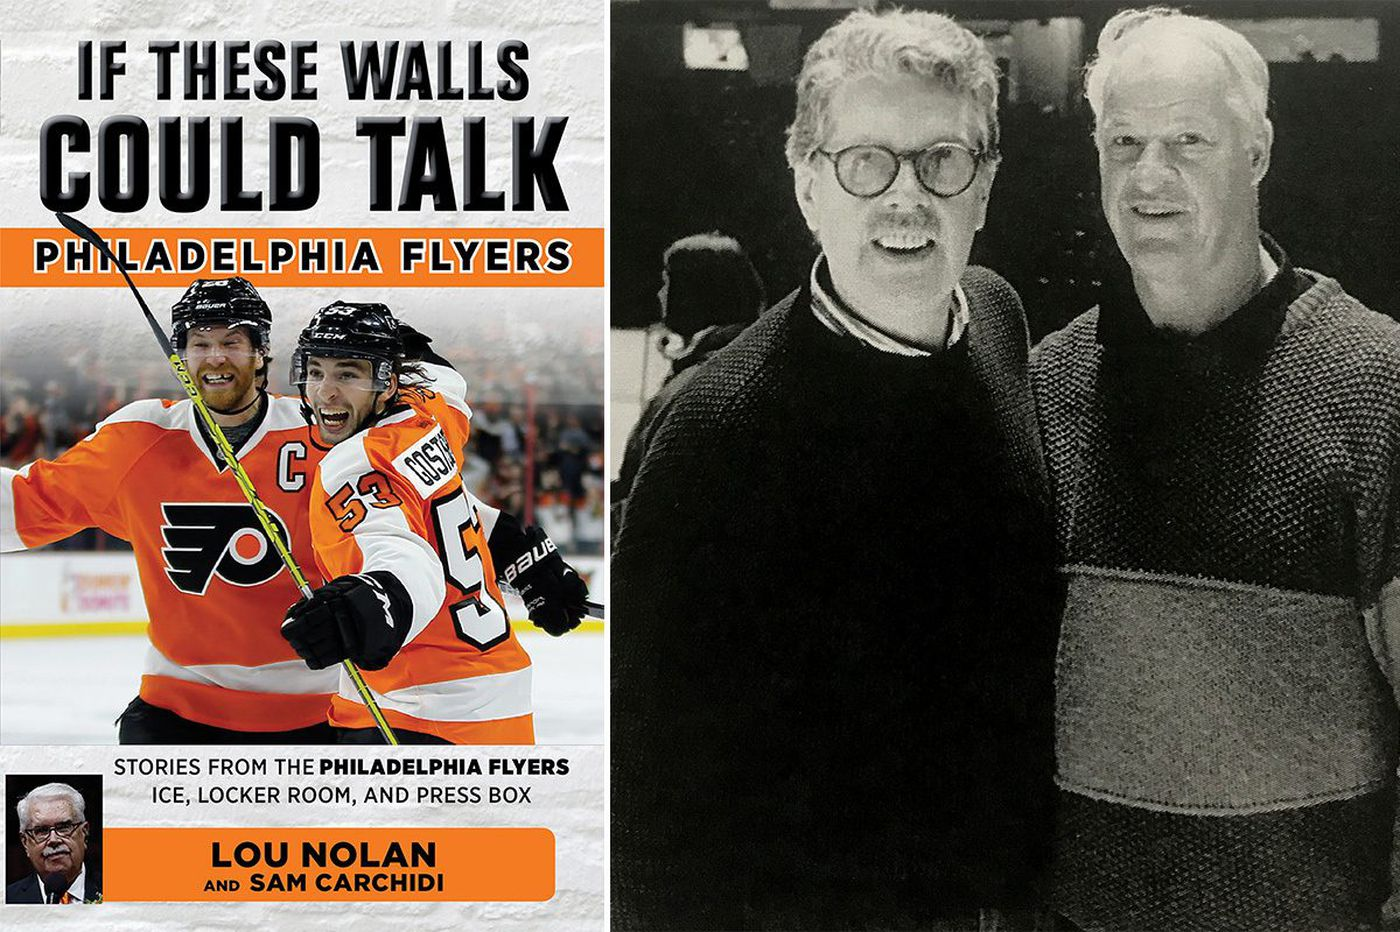 Lou Nolan's 50-year diary of Flyers hockey: If These Walls Could Talk